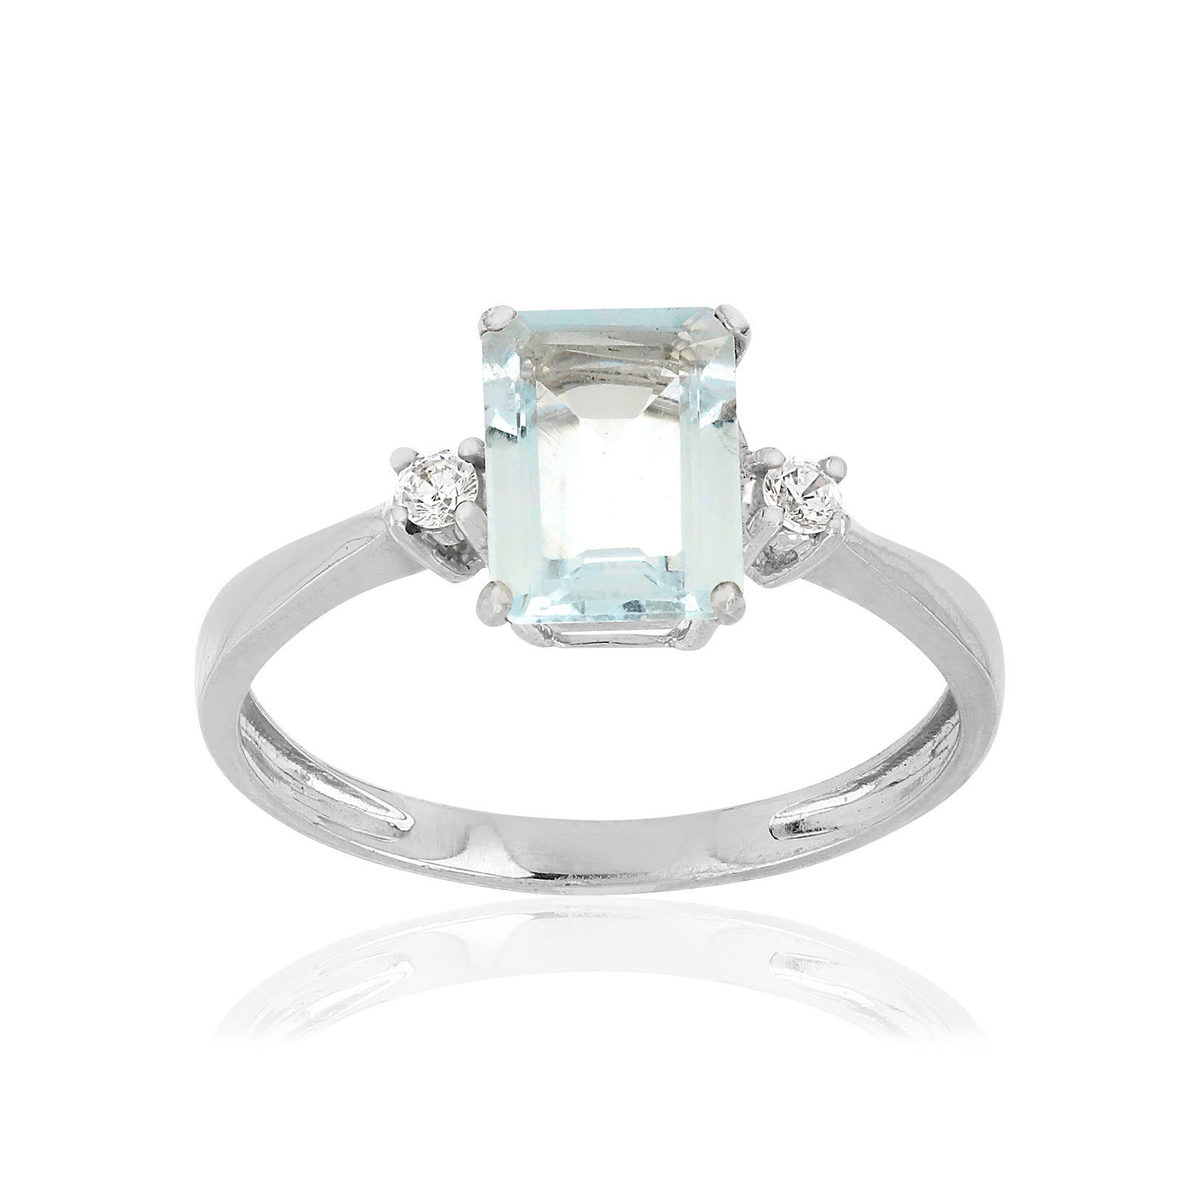 Bague MATY Or 375 blanc Aigue marine Zirconias - vue V1